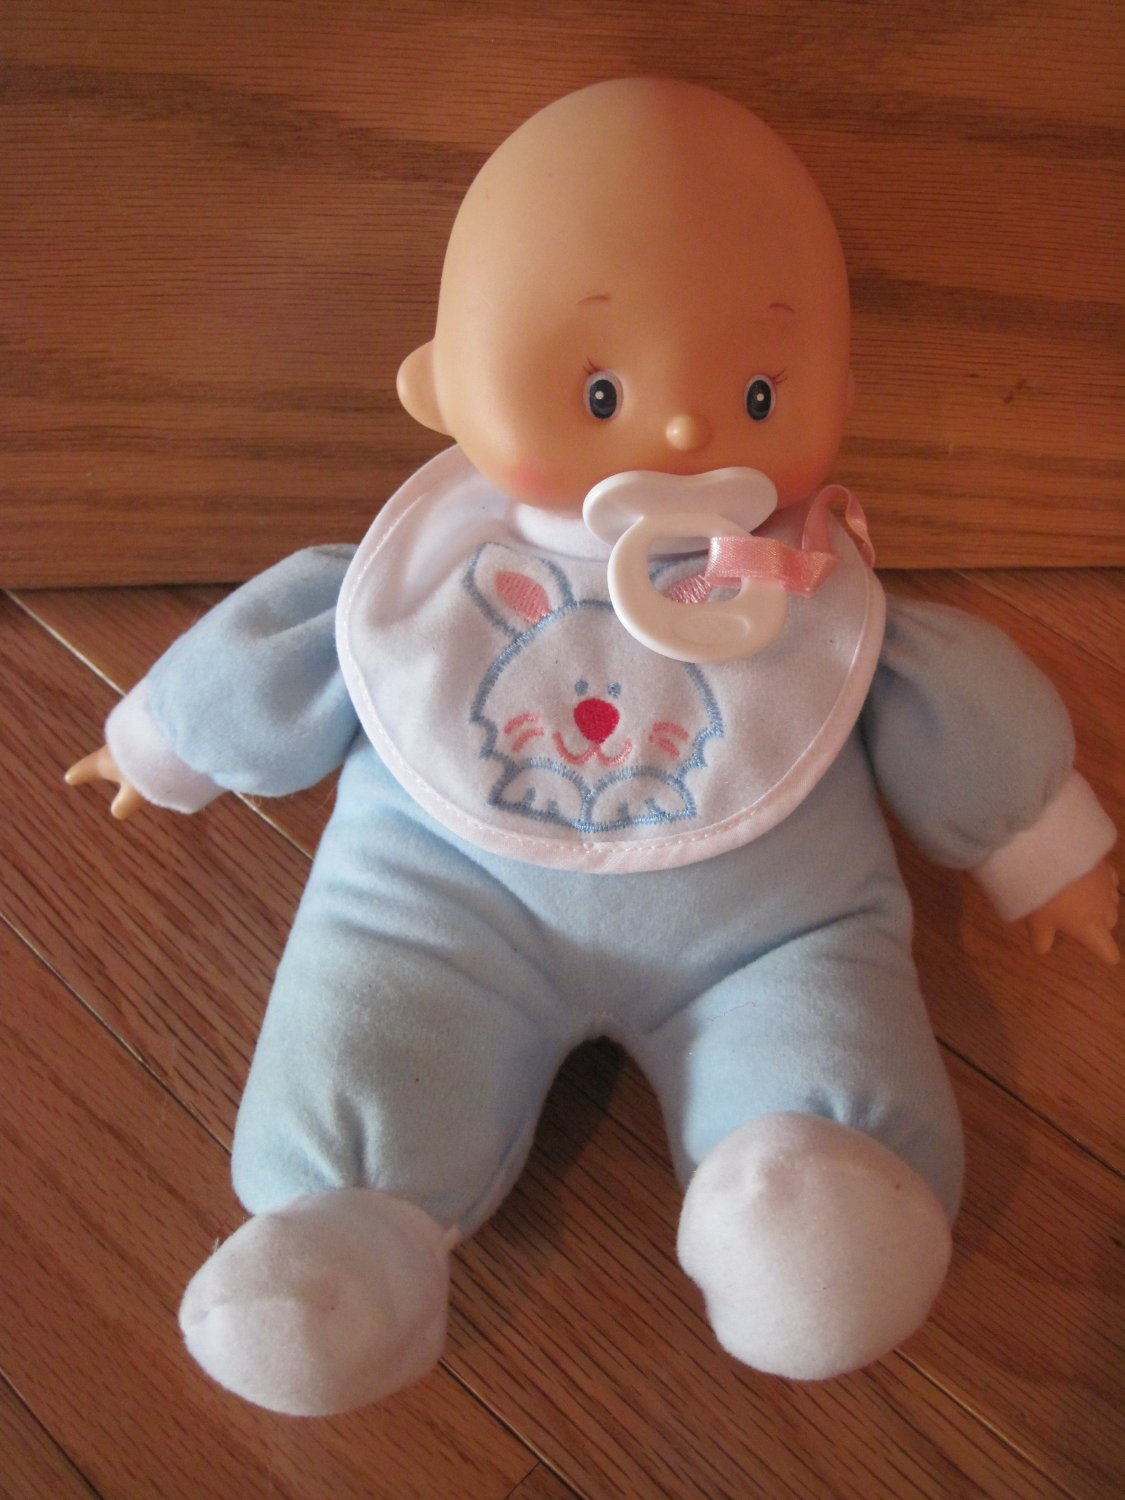 Hong King Cititoy Plush Baby Doll Blue Outfit Pajamas